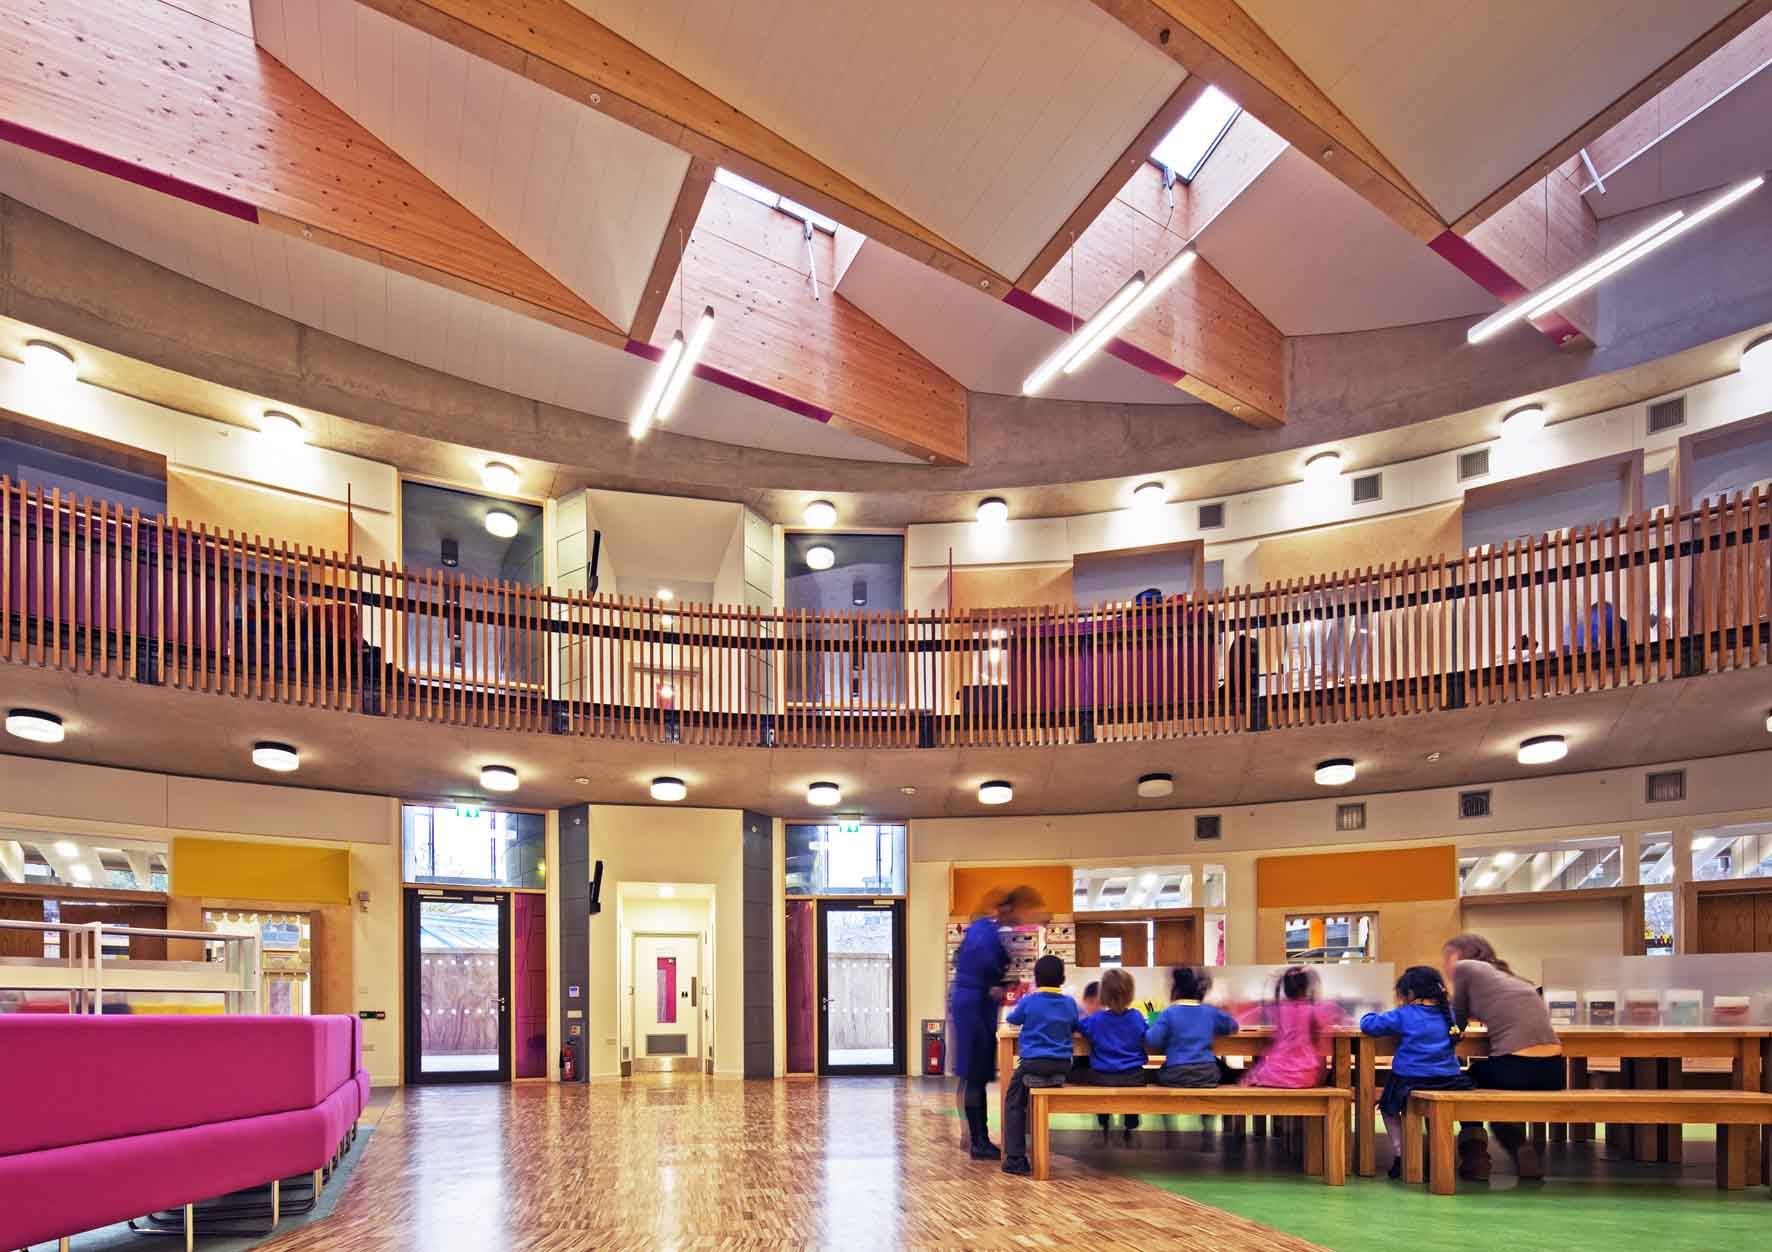 Faraday School Interior